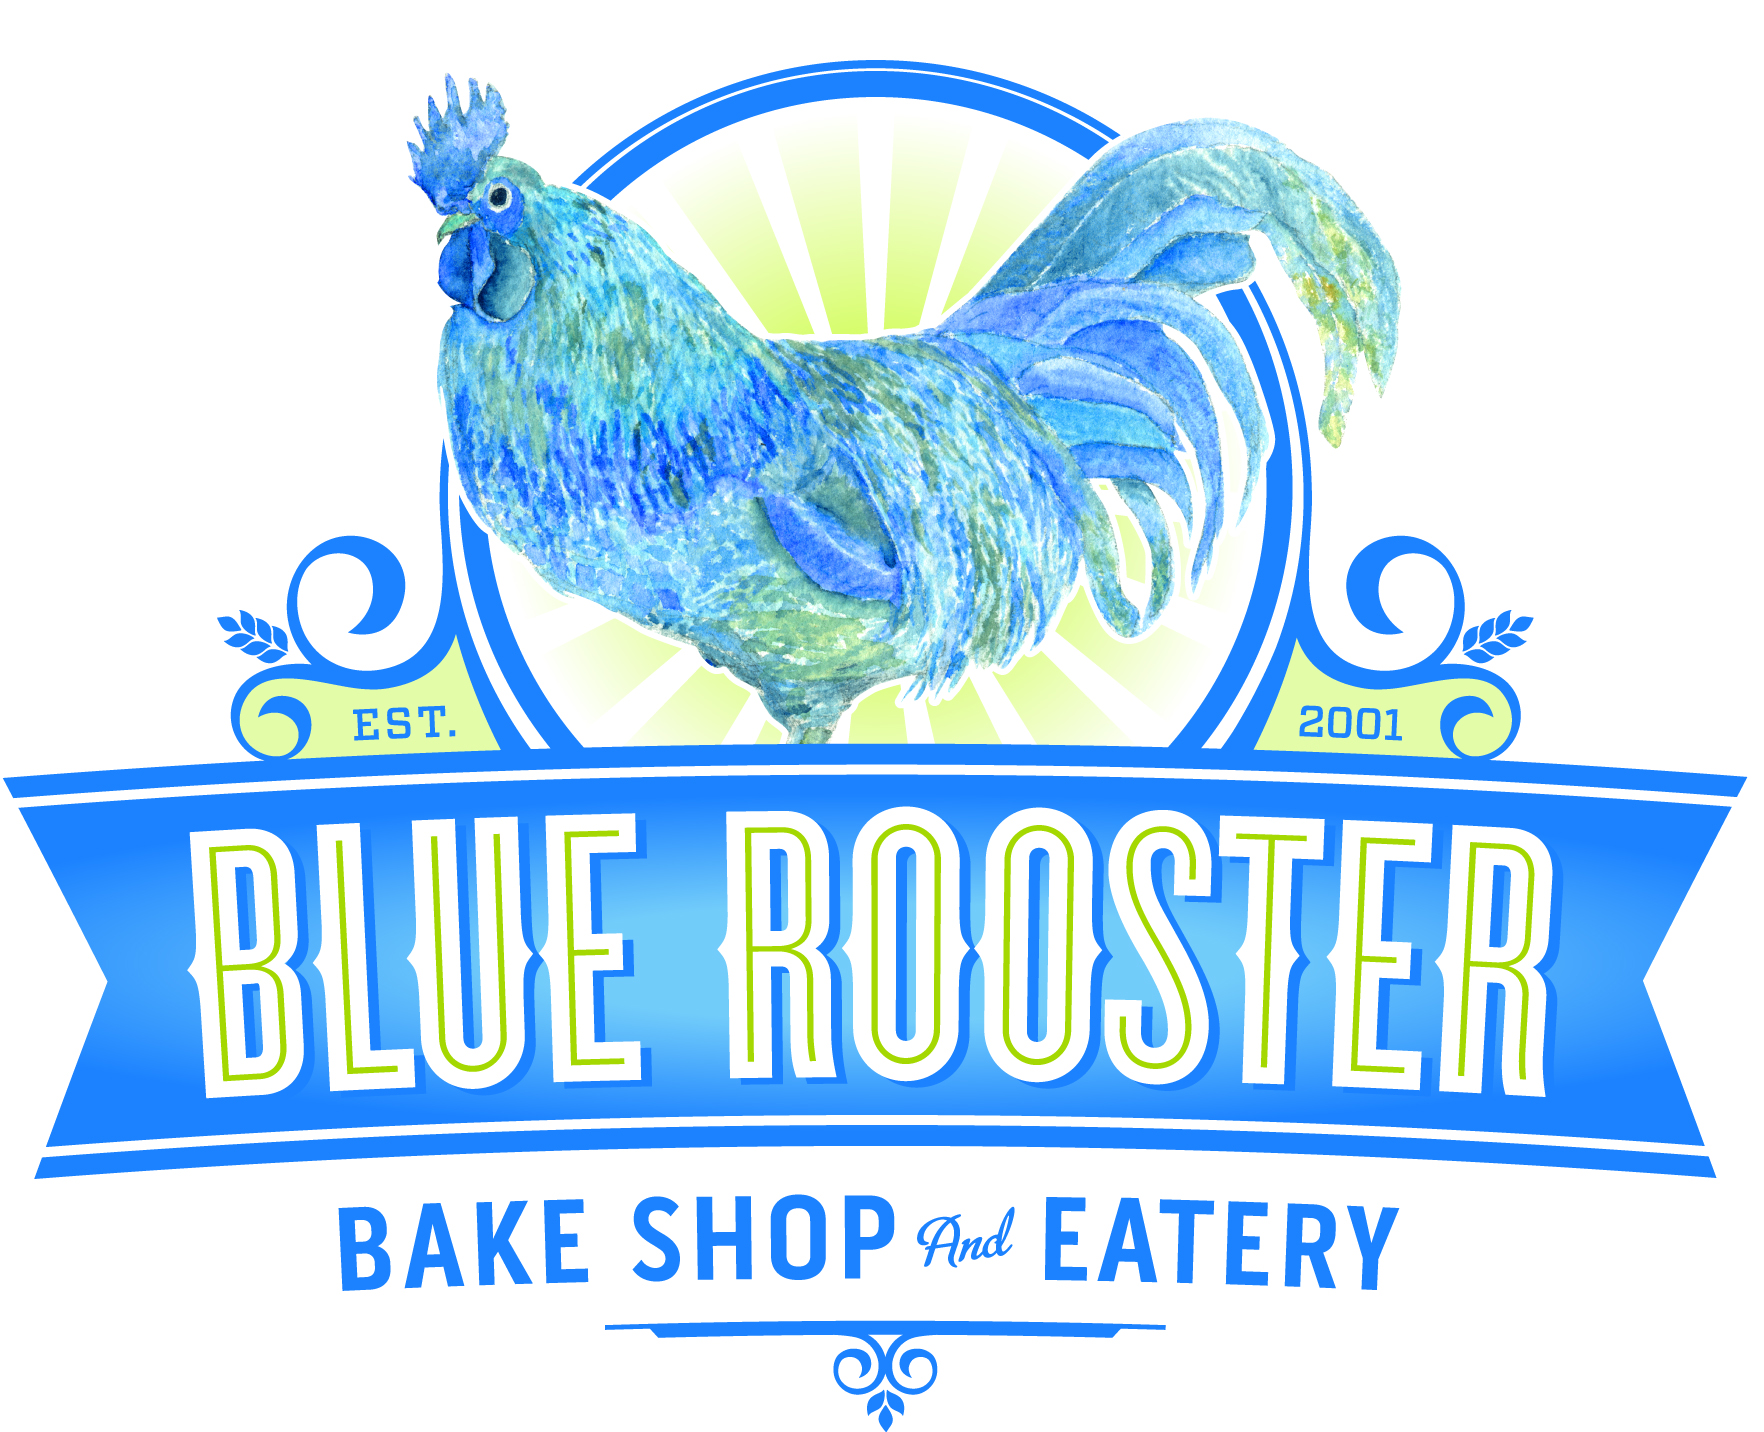 Blue Rooster Bake Shop & Eatery Logo